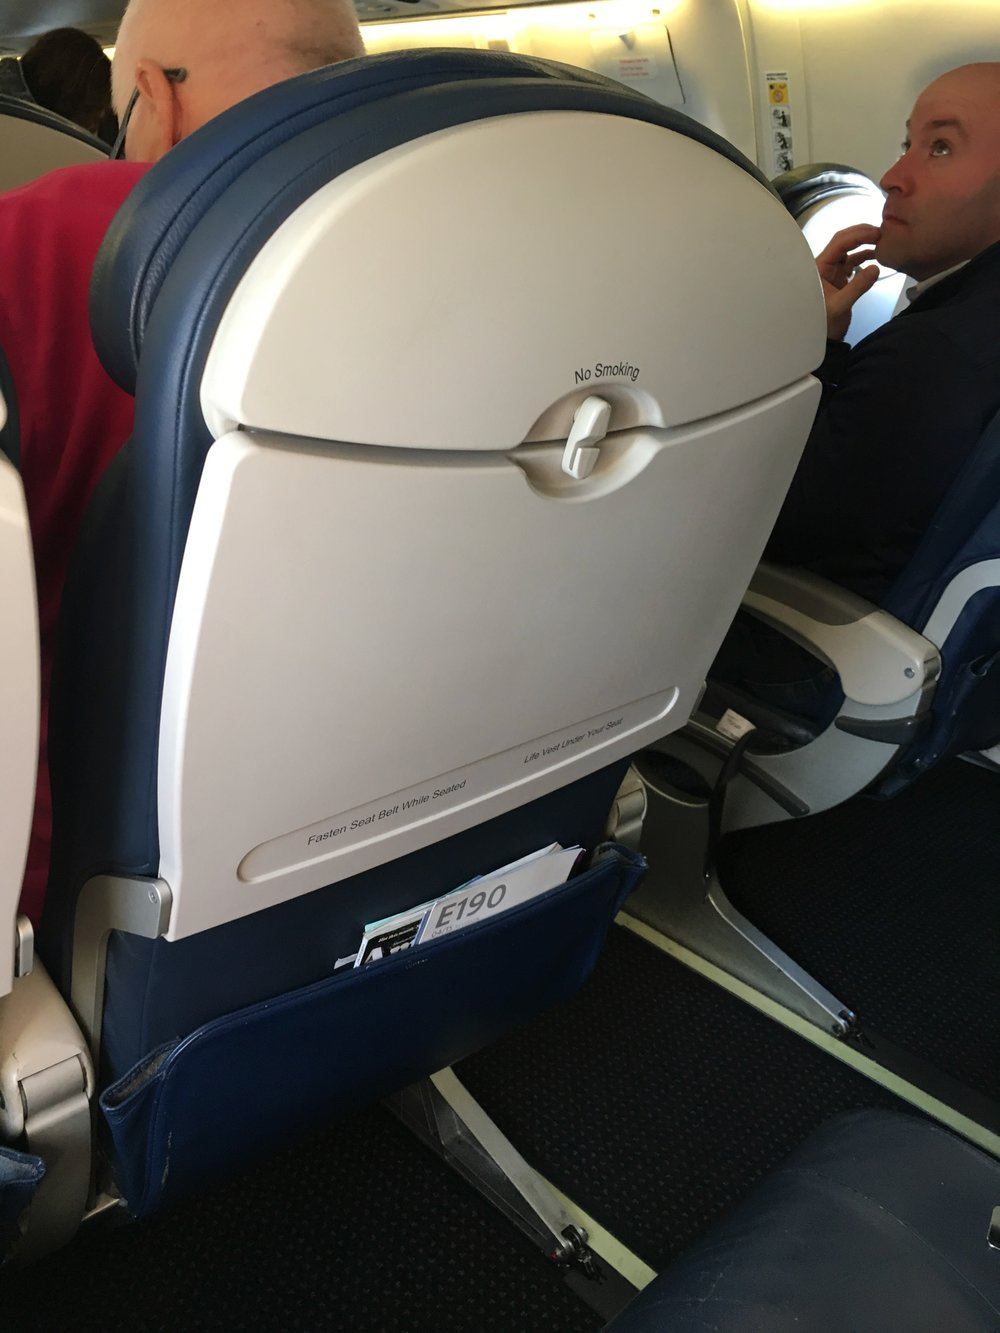 Blue seats, big tray table